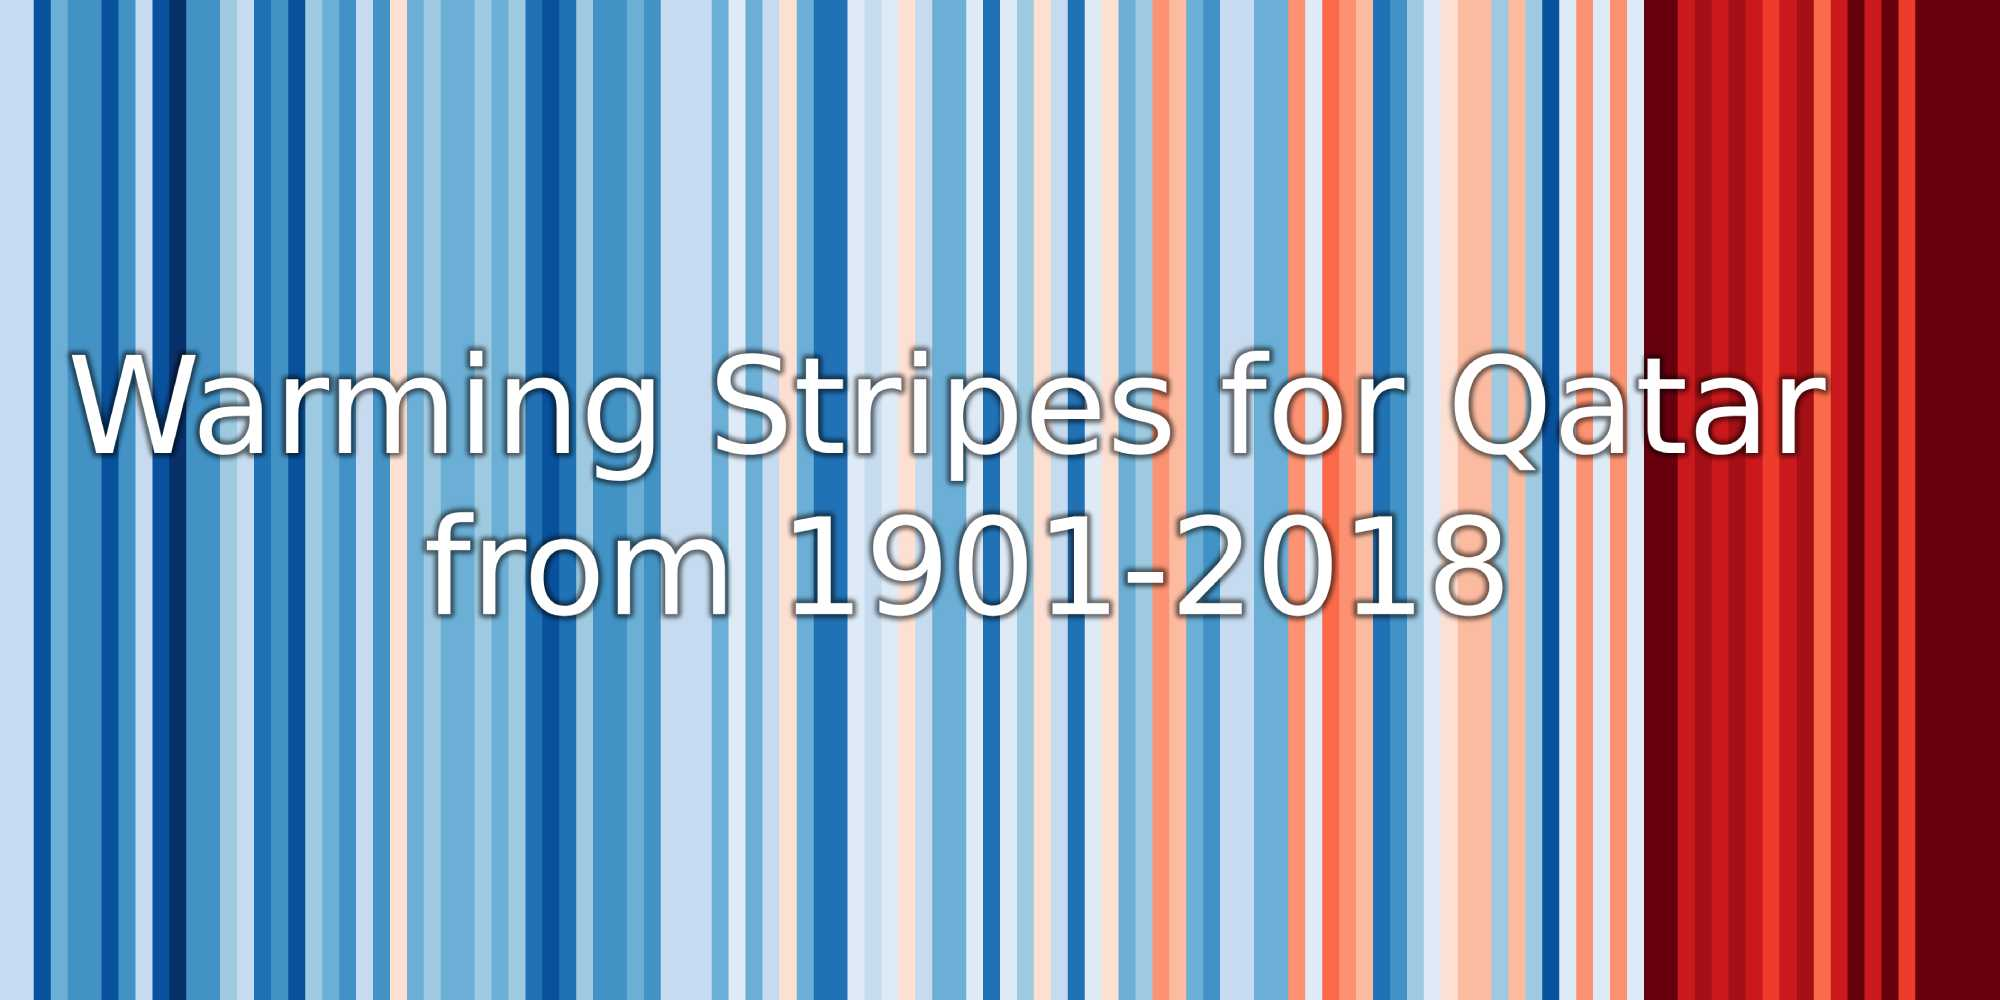 desc: Warming stripes for Qatar from 1901 to 2018;licence: CC;photo: Ed Hawkins